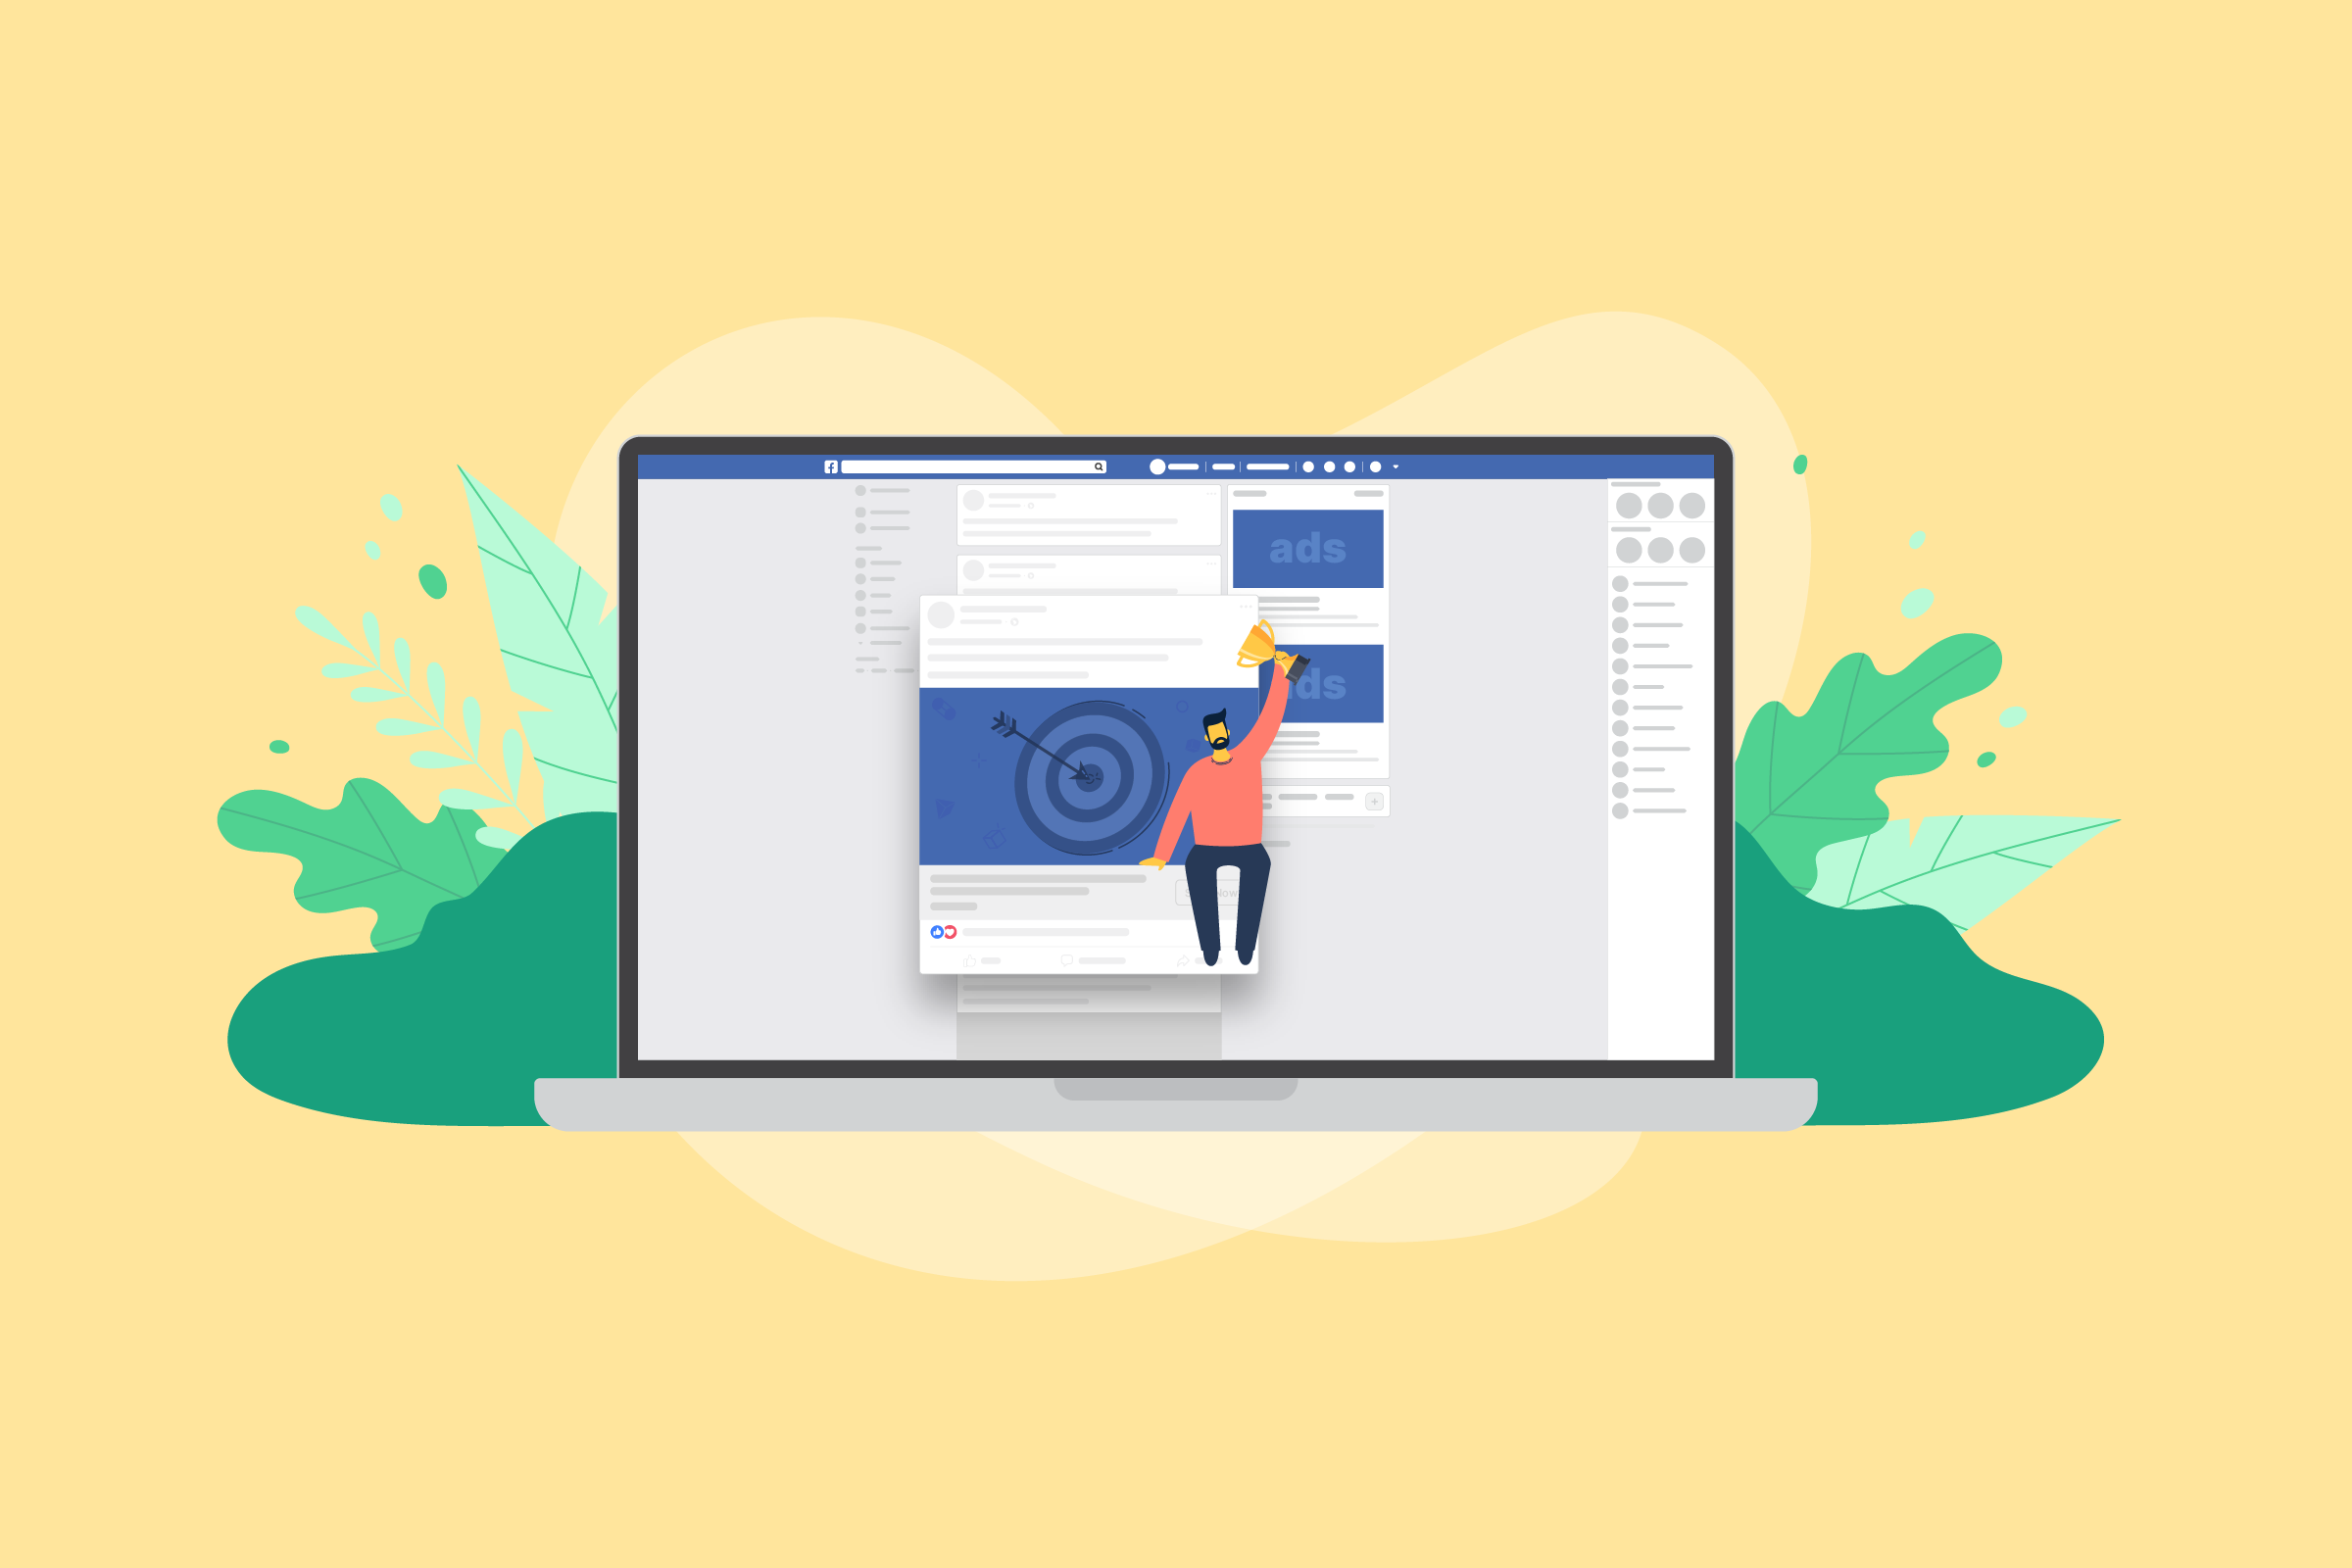 9 Mind-blowing Facebook Ad Examples That Increase Online Sales